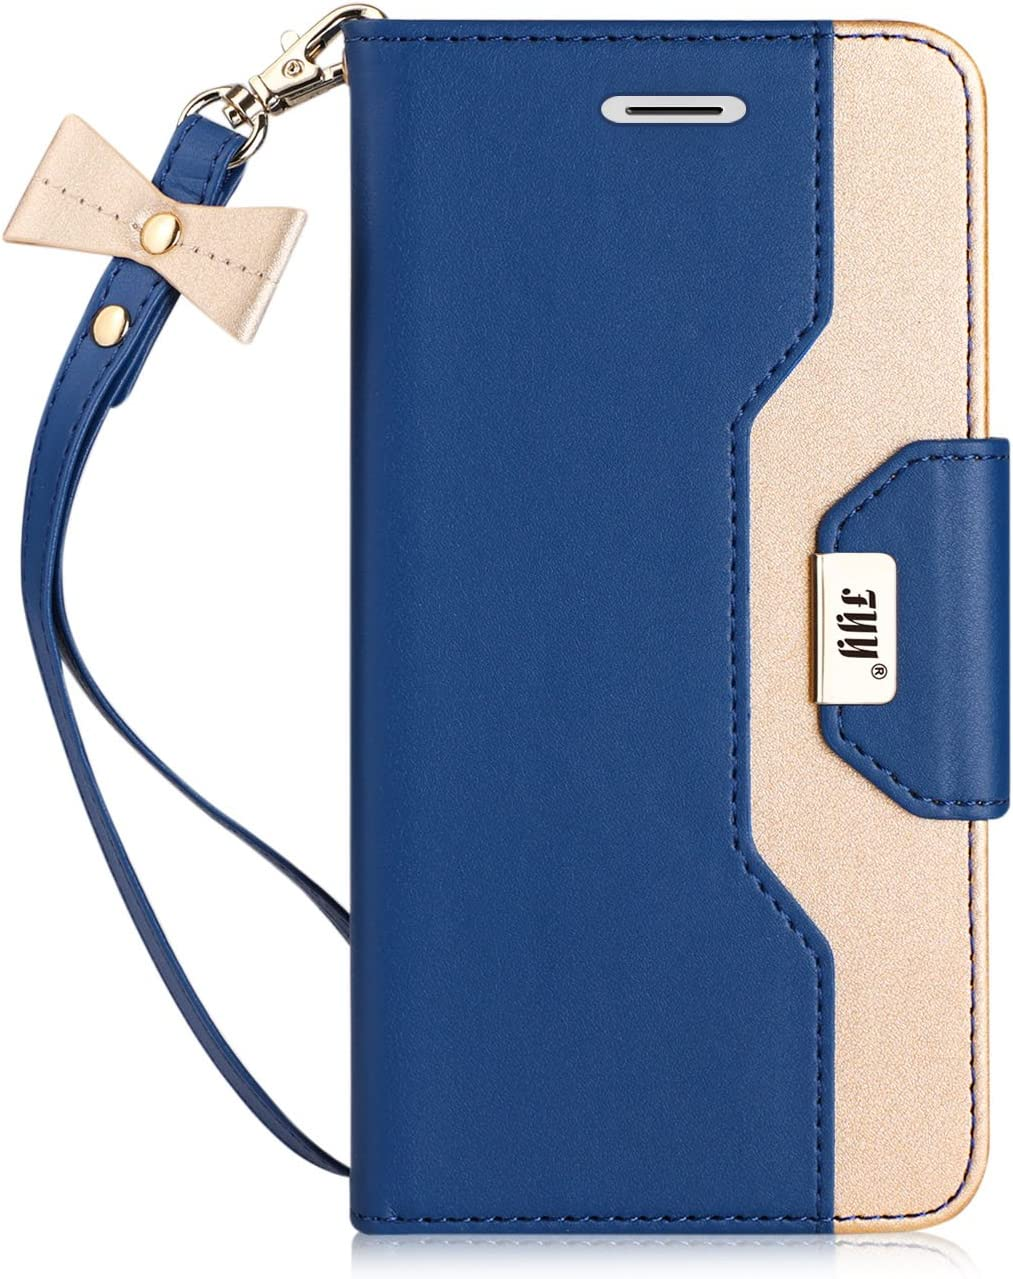 FYY Leather Case with Mirror for iPhone 8/iPhone 7/iPhone SE (2nd) 2020 4.7